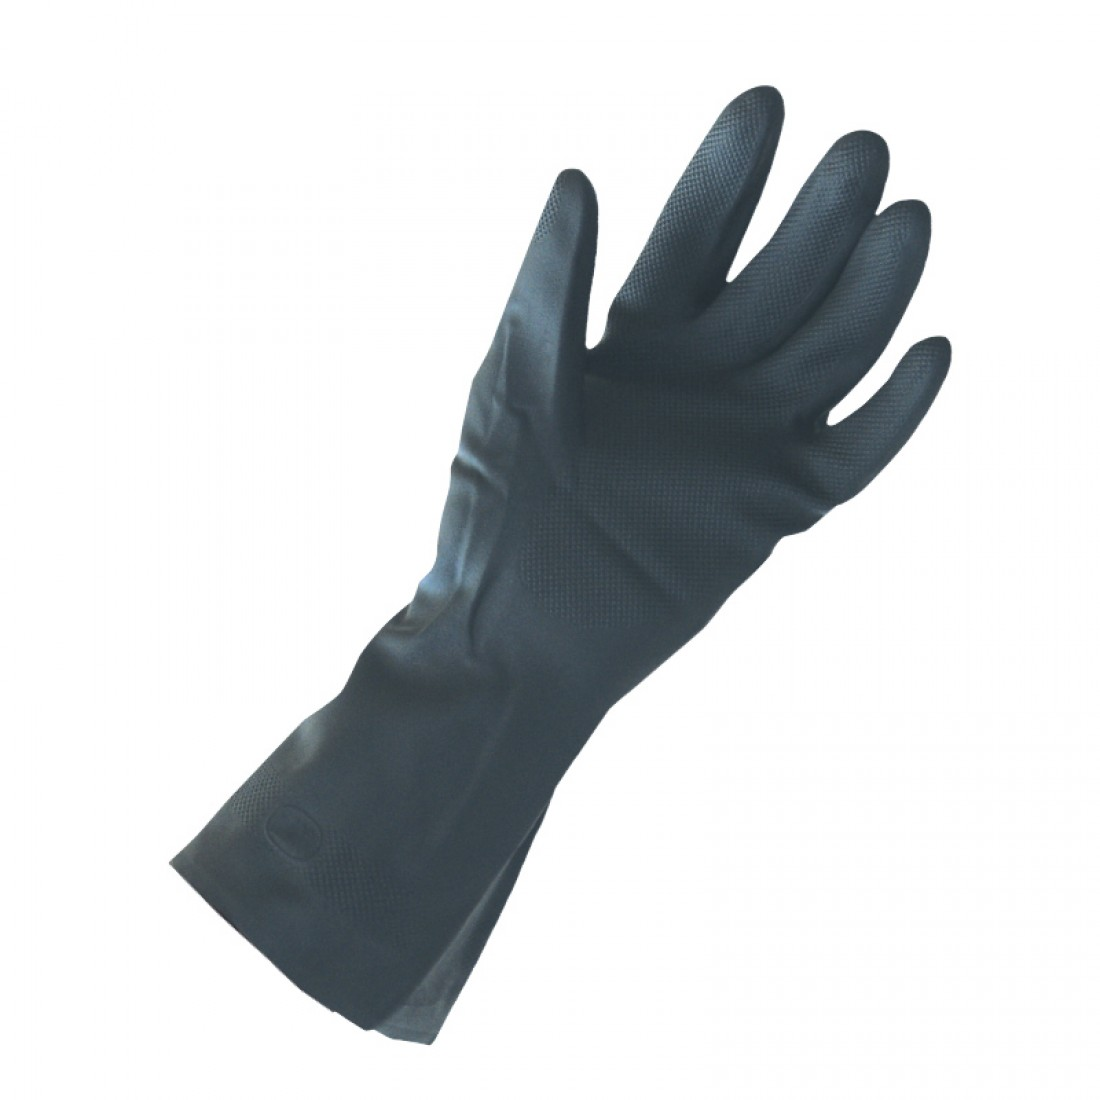 Deluxe Neoprene Glove - X Large